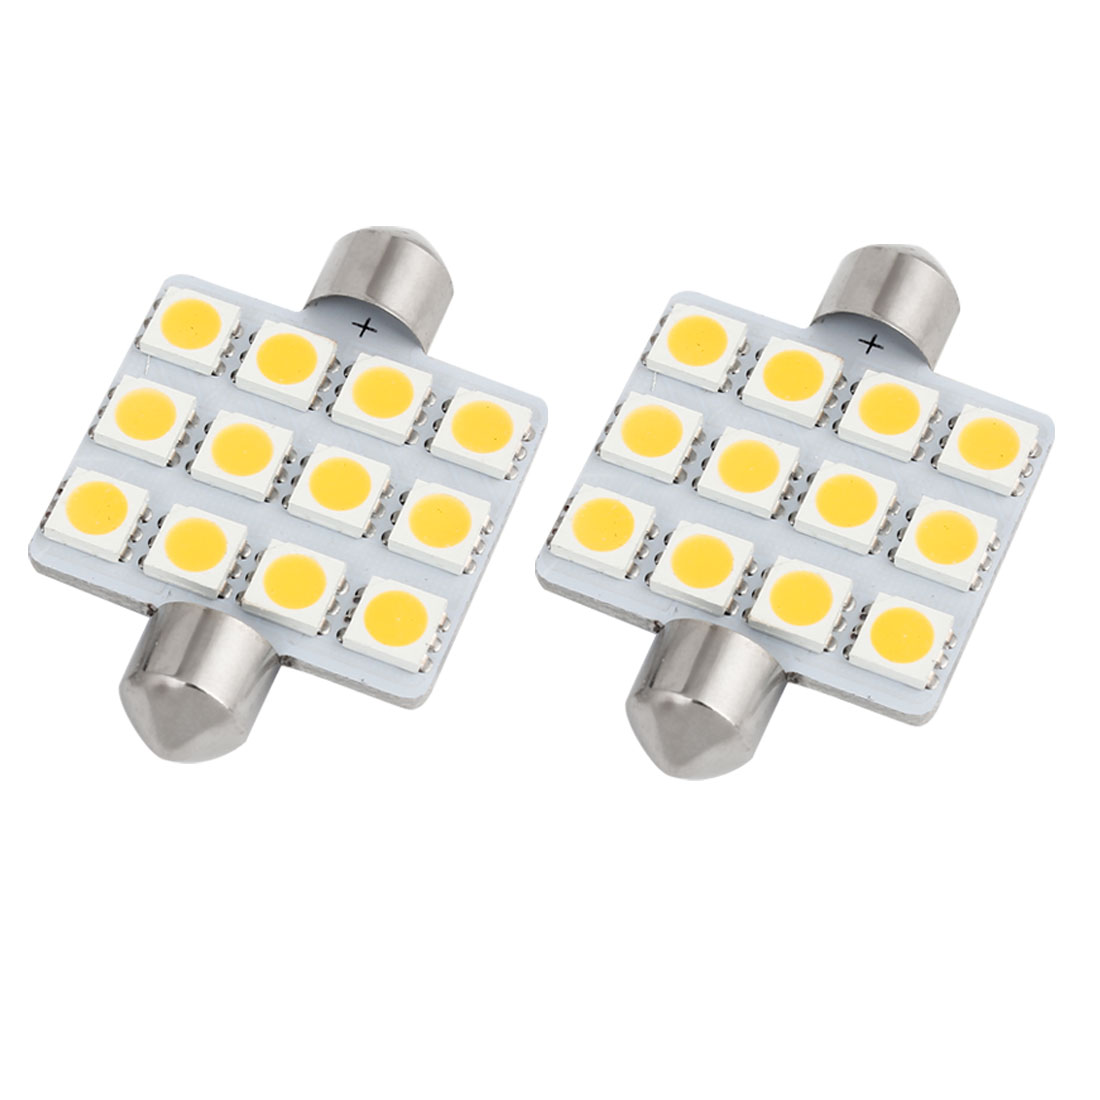 2 Pcs 41mm 12 LED 5050 SMD Warm White Festoon Map Reading Light 212 214-2 Internal